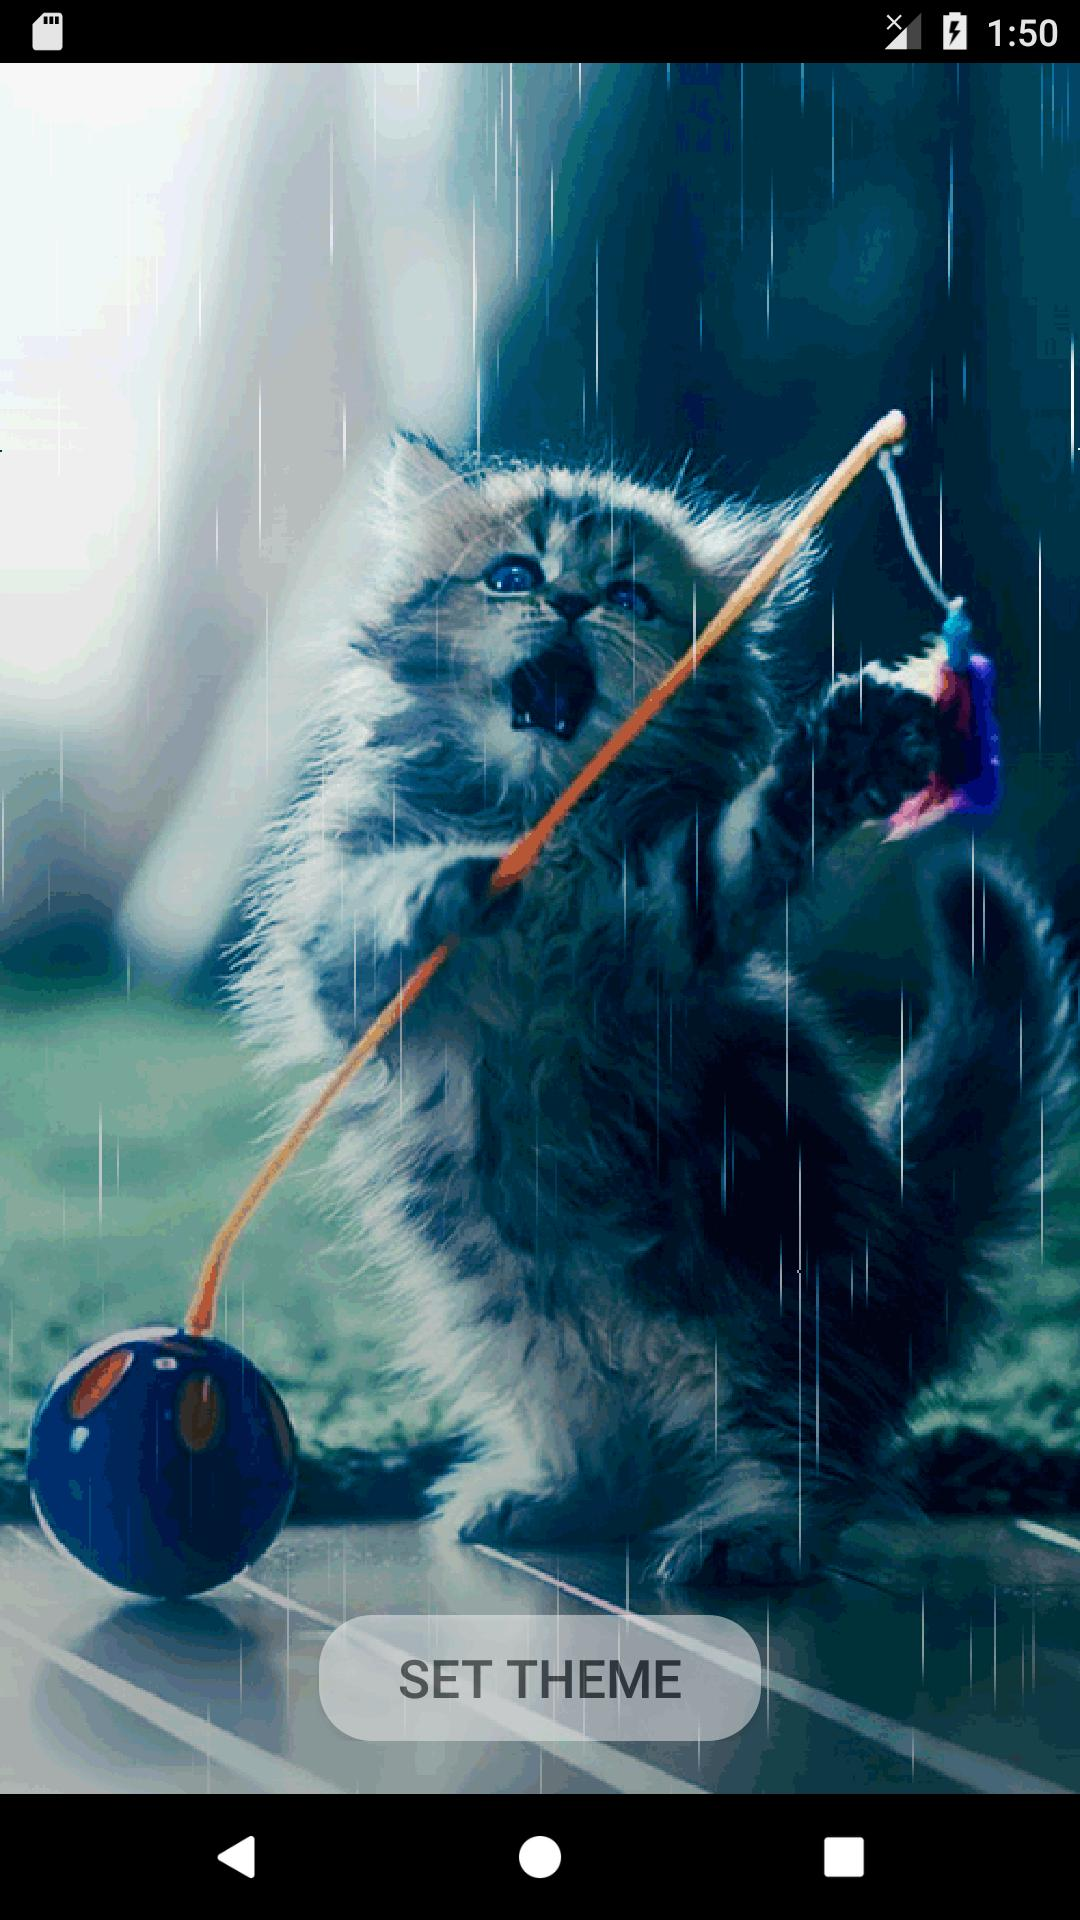 Cute Cat Animation Theme Live Wallpaper For Android APK